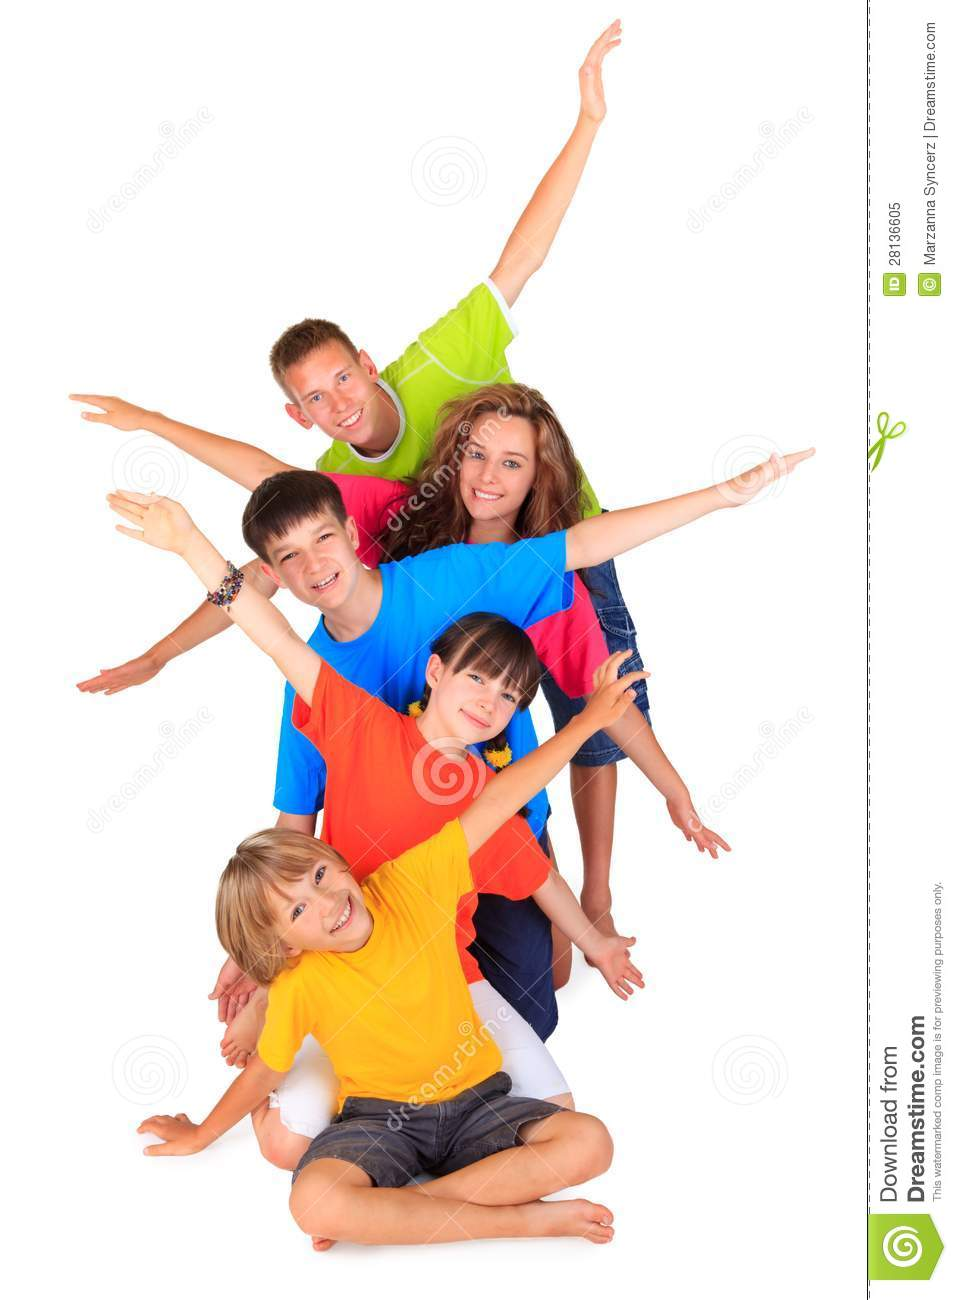 Kids with Outstretched Arms